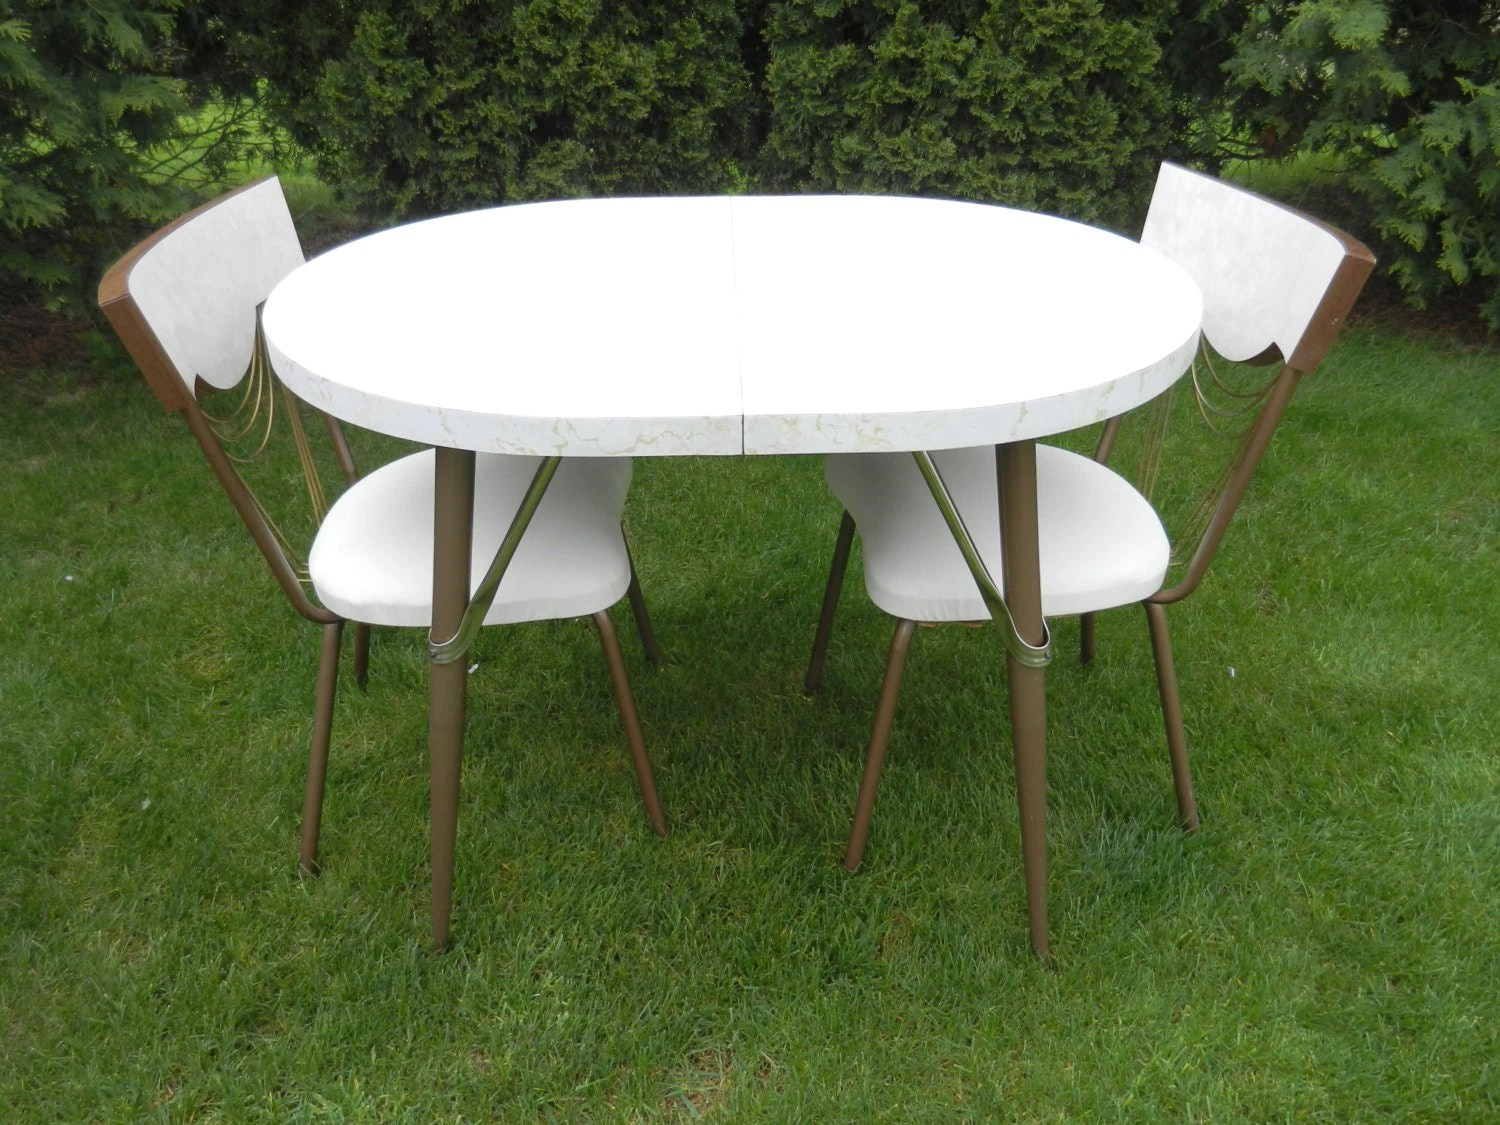 Formica Table And Chairs Formica Kitchen Table And Chairs Set Dinette Set By